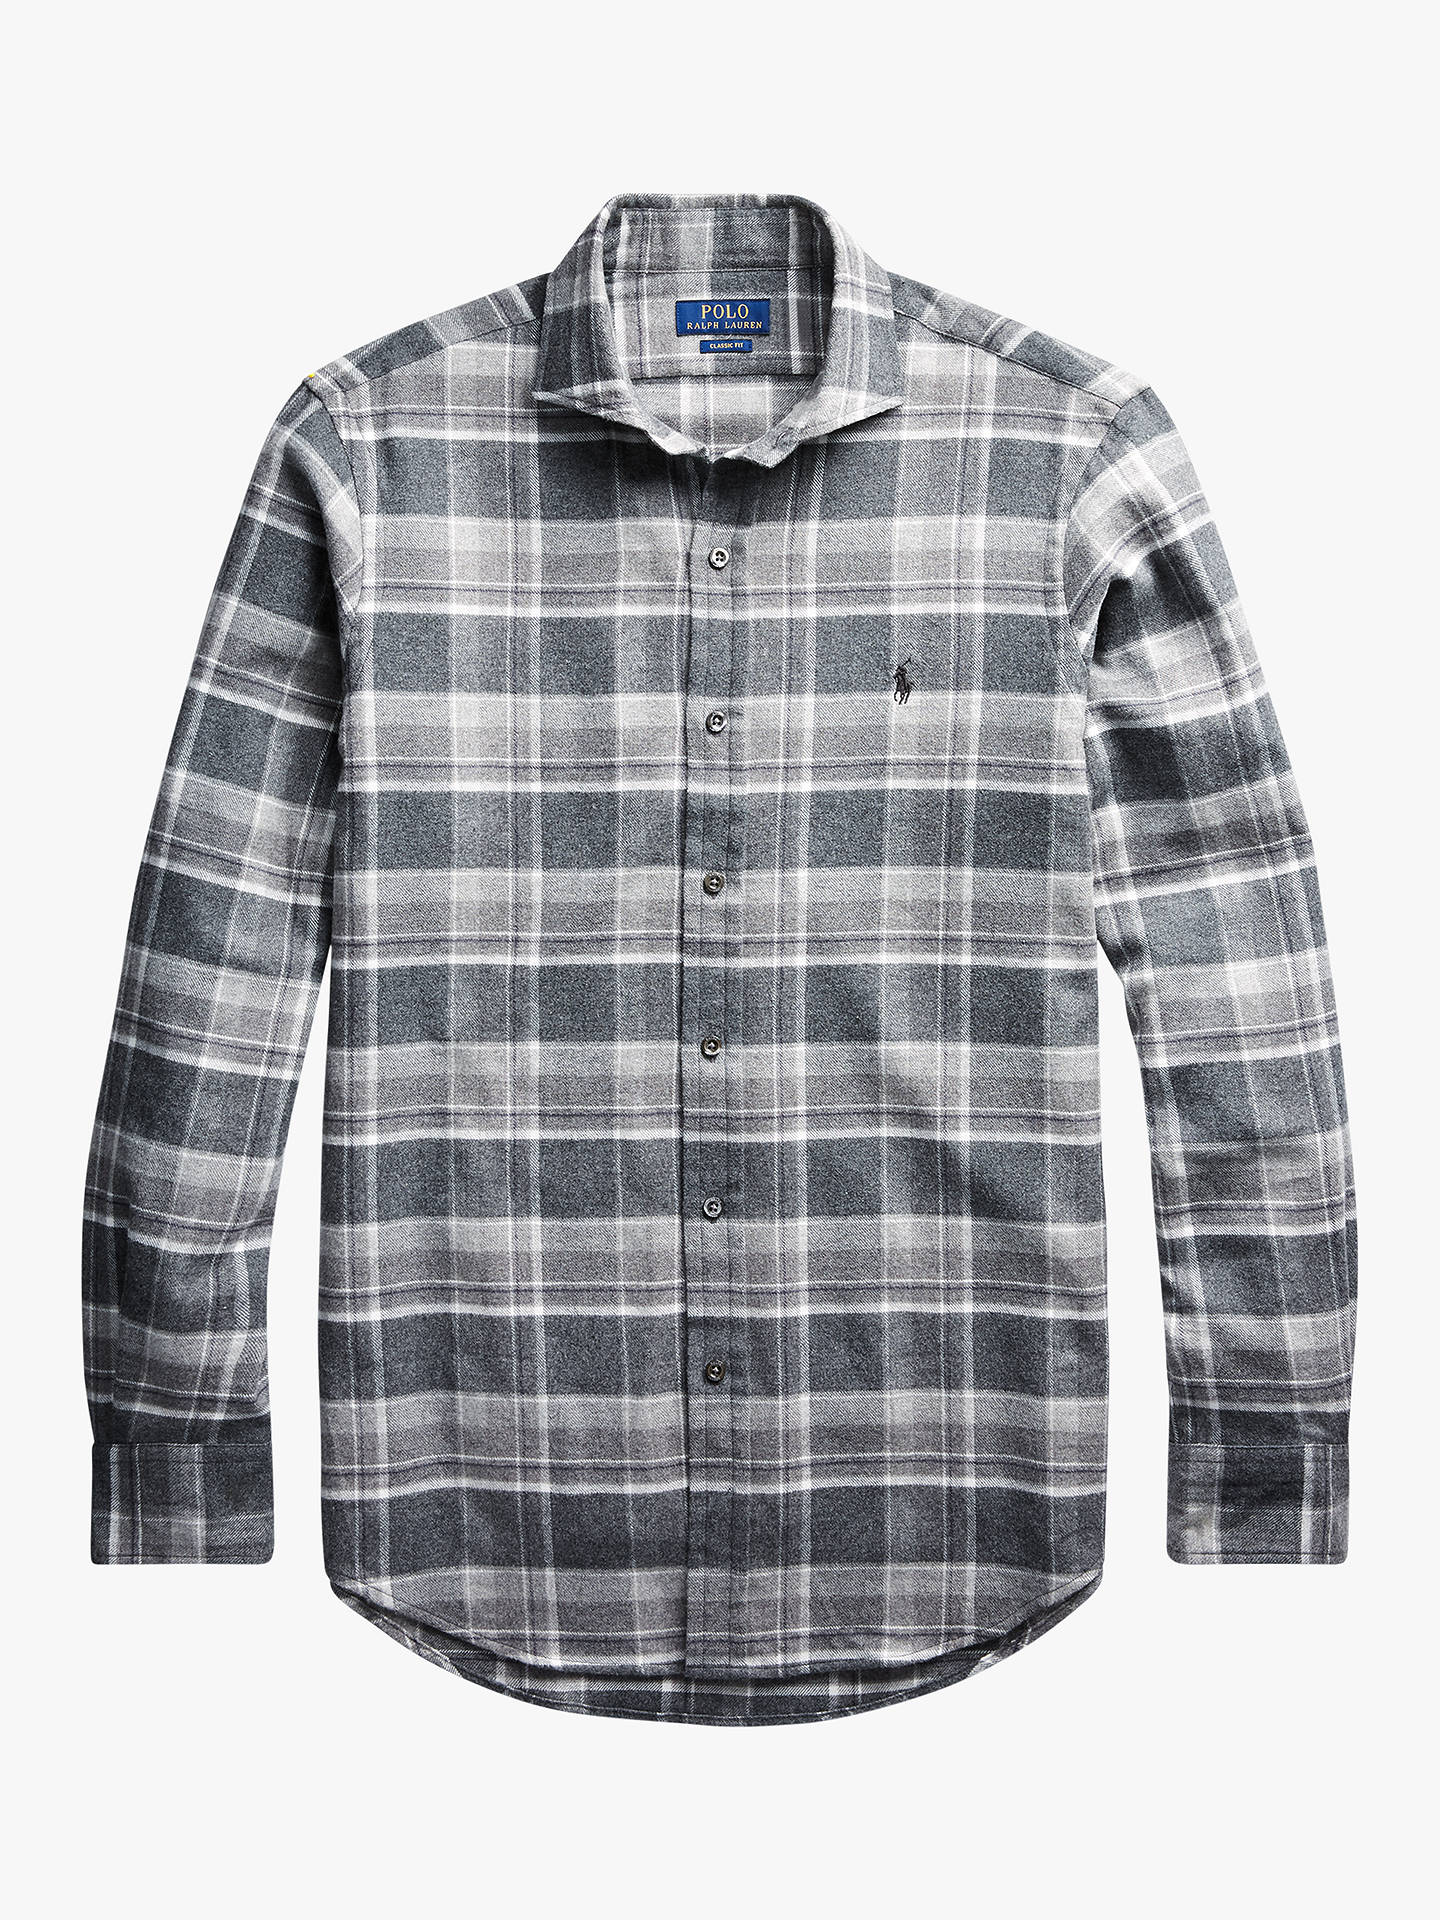 Polo Ralph Lauren Big /& Tall Men/'s Gray Plaid Cotton Flannel Button Front Shirt